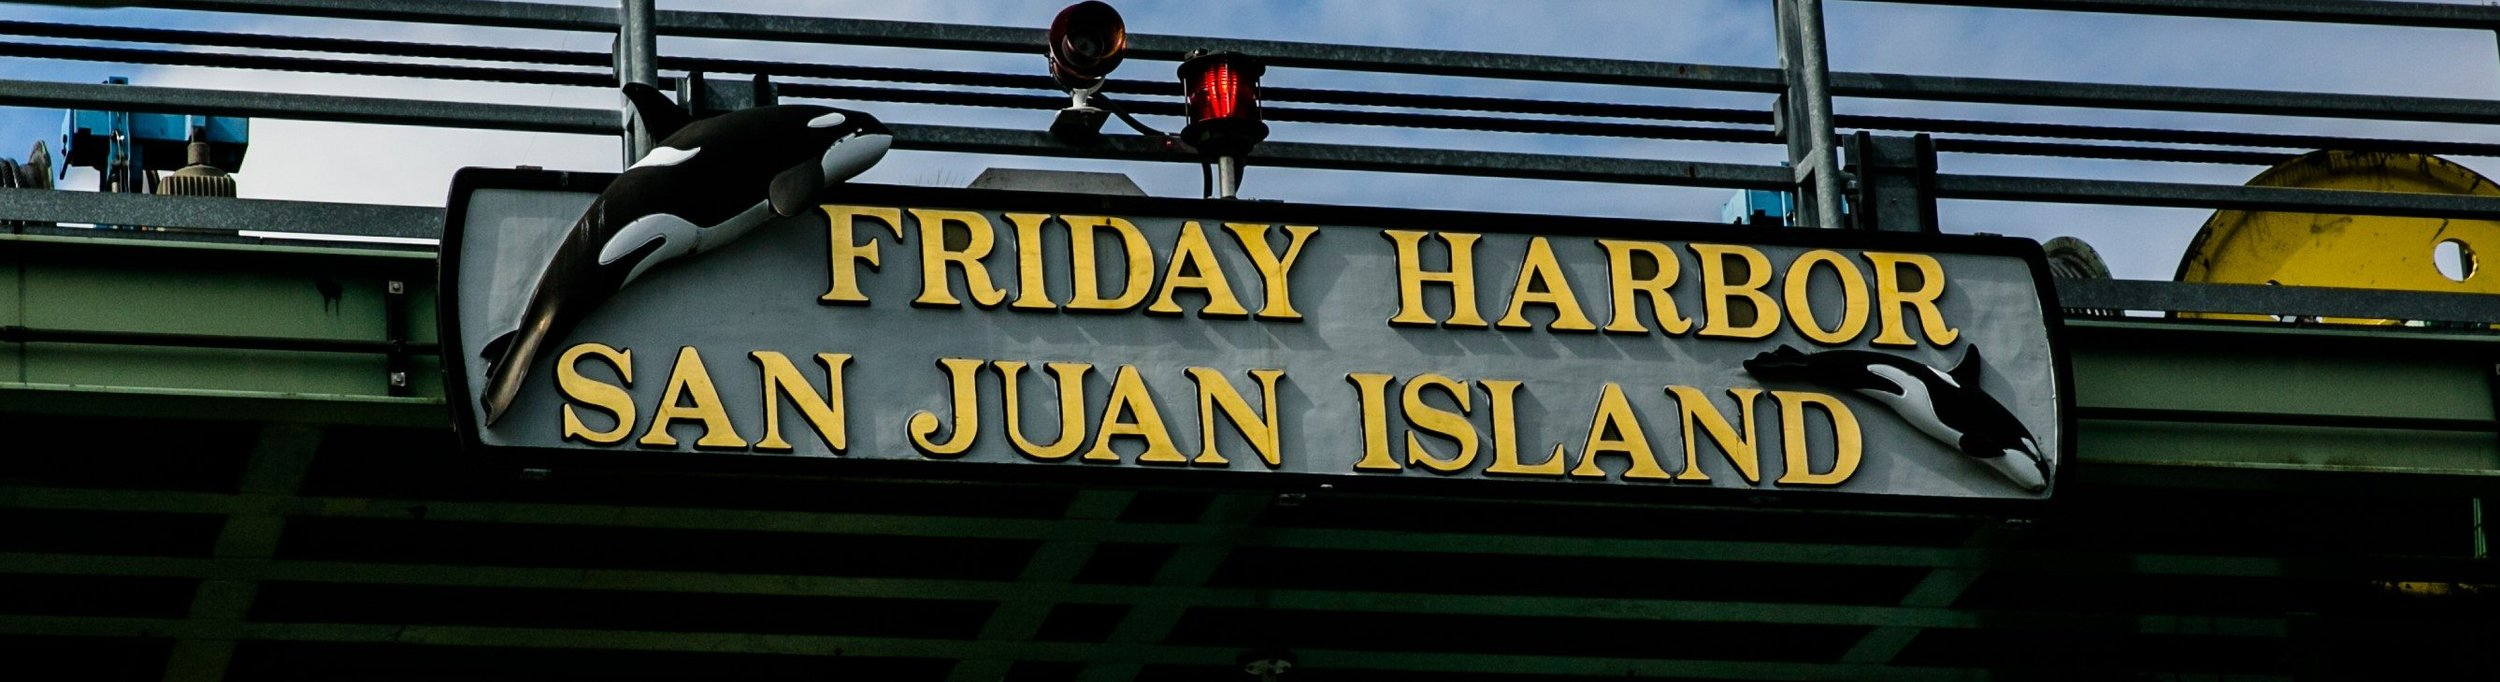 Places to stay in Friday Harbor.jpg